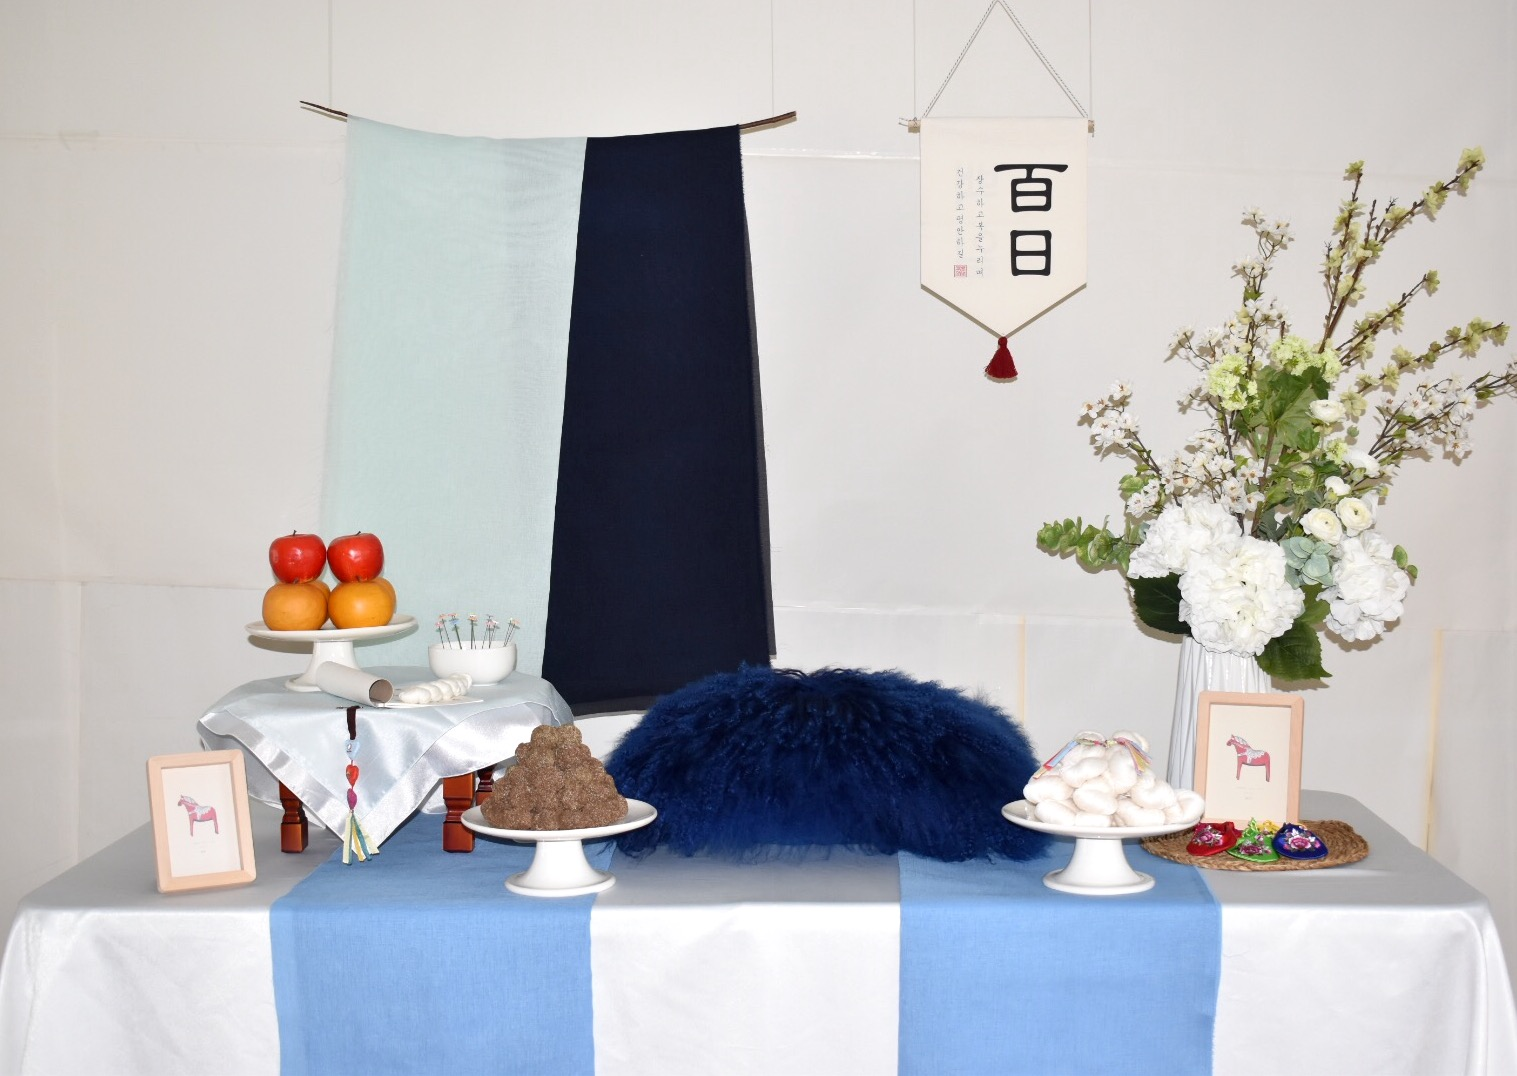 PETIT STYLE TABLE RENTAL: 심플 블루 백일(SIMple blue) - Included: Two tone hanging runner, round wooden table, traditional tablecloth, traditional runner, small tablecloth, display fruits(option), rice cakes(option), silk flowers and plastic vases, shil ta rae, traditional accessories are randomly picked, 2 picture frame** Mix &Match backdrops and runners *** Pick up- Everything included in the picture except display rice cakes, display fruits, dishes, cushion.* Out of state - display rice cakes, apples are not included. (optional).* Shipping fee will apply. Fees might vary depending on location.상품구성: 투톤 행인 러너 2개, 상 1개, 한복 원단 러너,상보, 모형 과일(옵션), 모형 떡(옵션), 꽃과 아크릴 화병, 상화, 실타래, 전통 장식품들 램덤, 액자 2개** 러너 Mix & Match 하실수 있습니다.*** Pick up- 사진에 모든 물품 포함되지만 모형떡, 과일, 방석은 포함되지 않습니다. 전통 소품들은 랜덤입니다.* 타주시 - 깨지지 않는 소품들로 나갑니다. 모형 과일, 떡은 옵션입니다. 전통 장식품들은 랜덤입니다.*배송시 배송비는 추가이며, 지역따라 배송비가 다를수 있습니다.